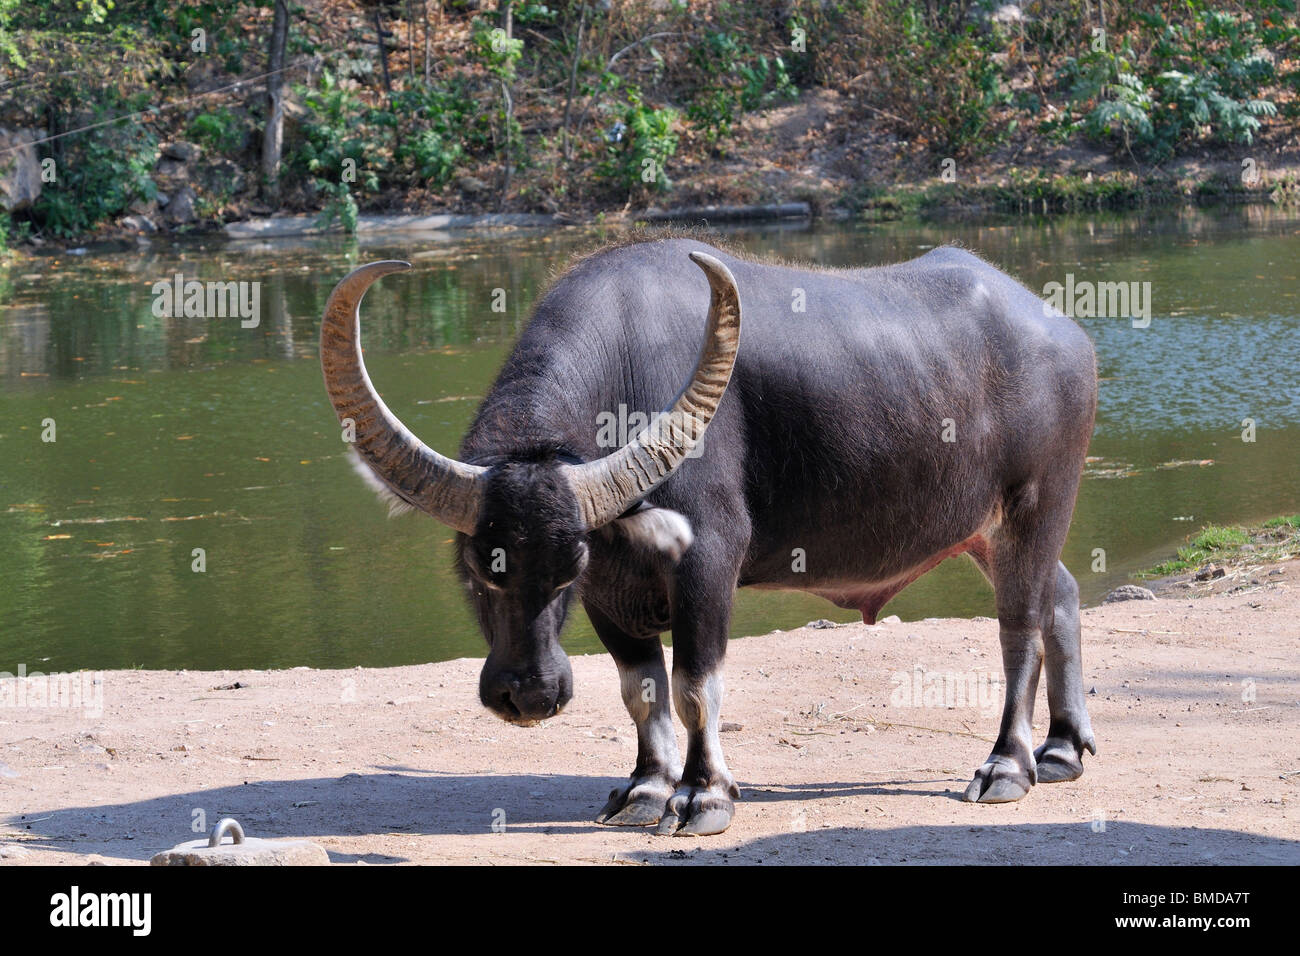 having-sex-asian-water-buffalo-pictures